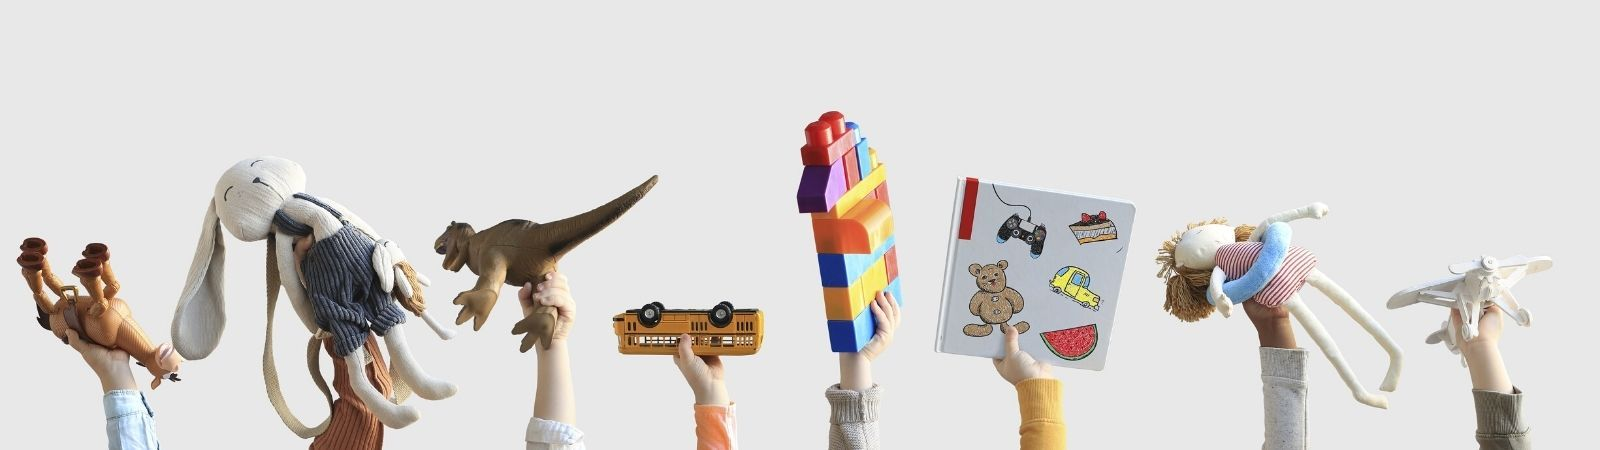 Eight children's hands holding up various toys including stuffed animals, blocks, trucks, and books on a white background.